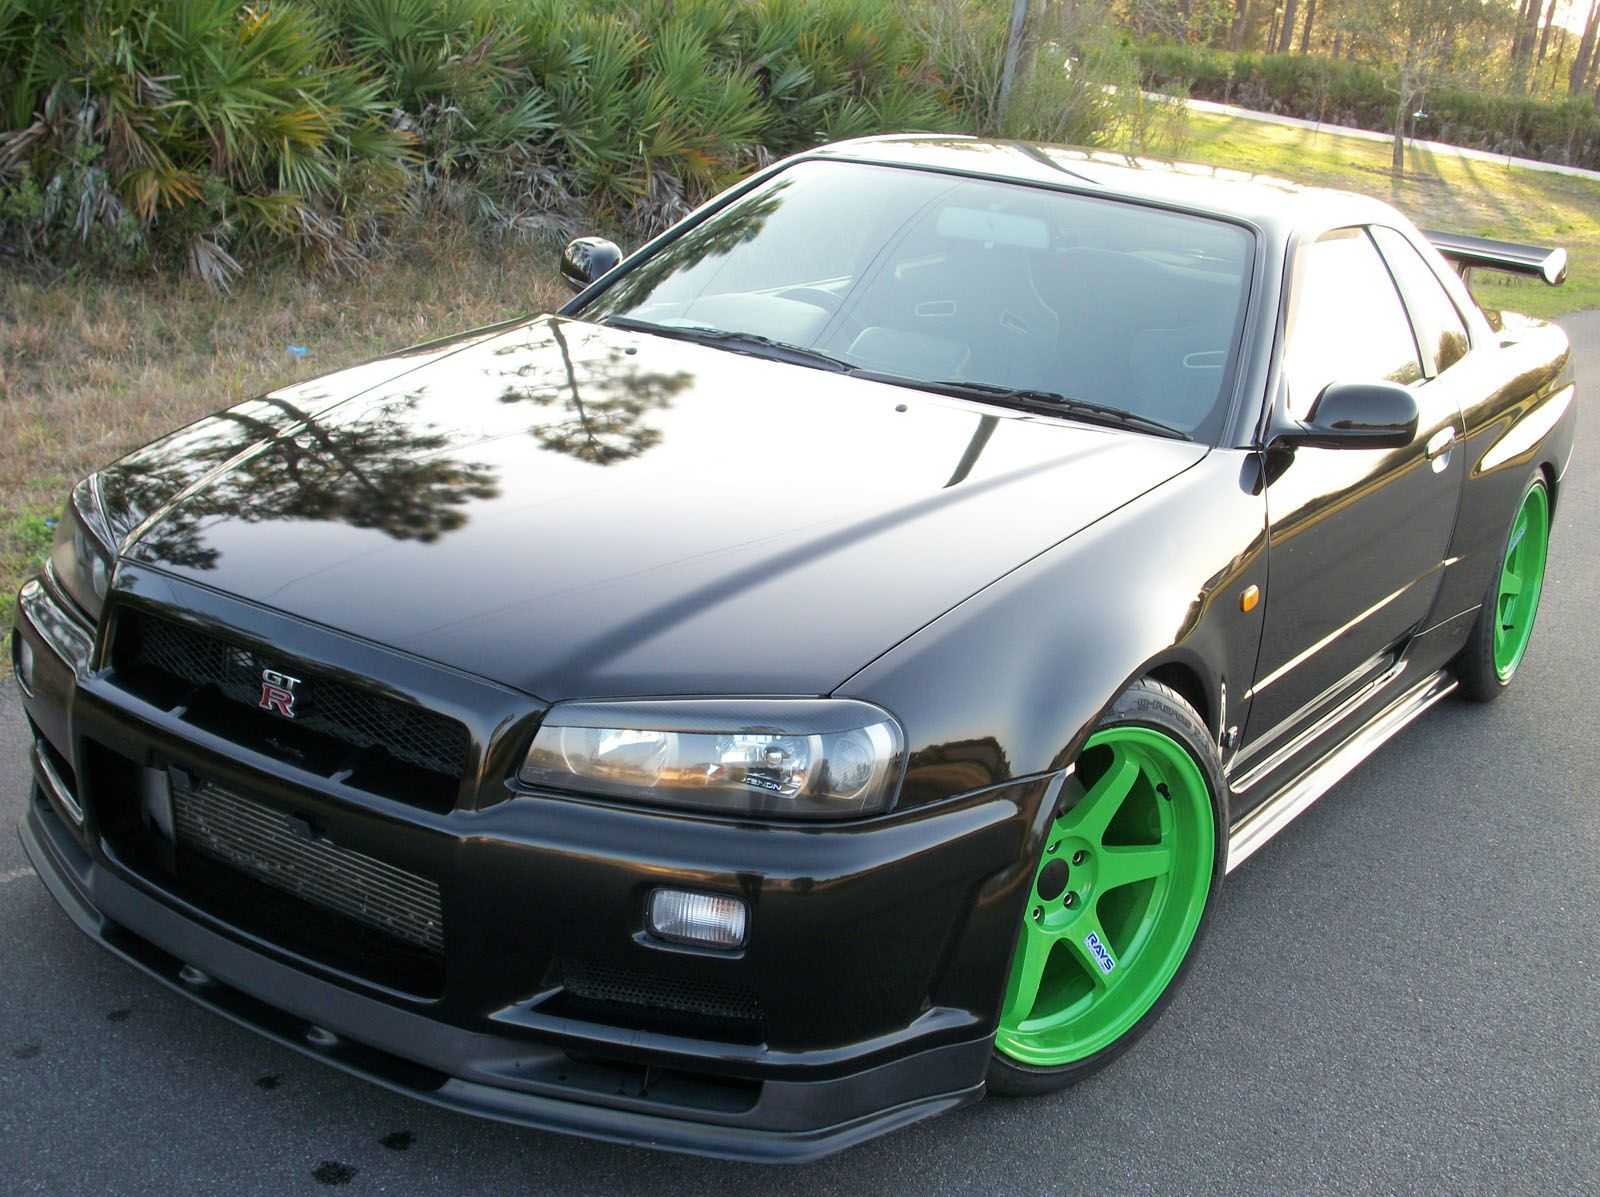 2002 Nissan Skyline R34 GTR For Sale Gtr r34, Nissan gtr